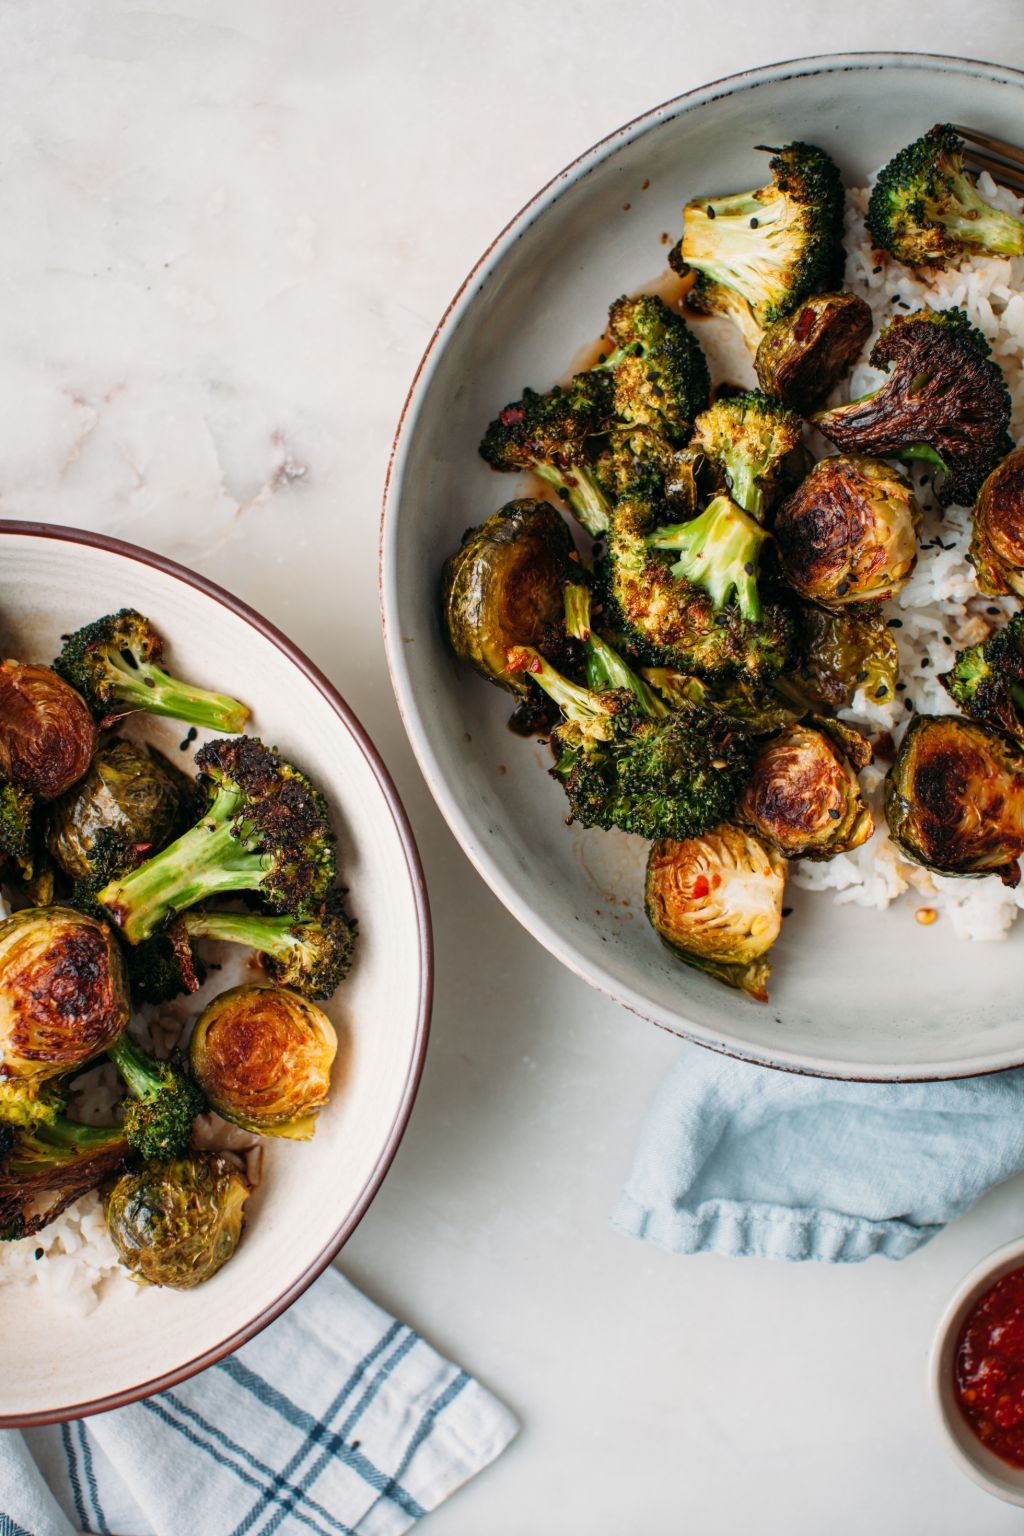 Roasted Broccoli and Brussels Sprouts with Sesame Soy Sauce - Tastemaker Blog